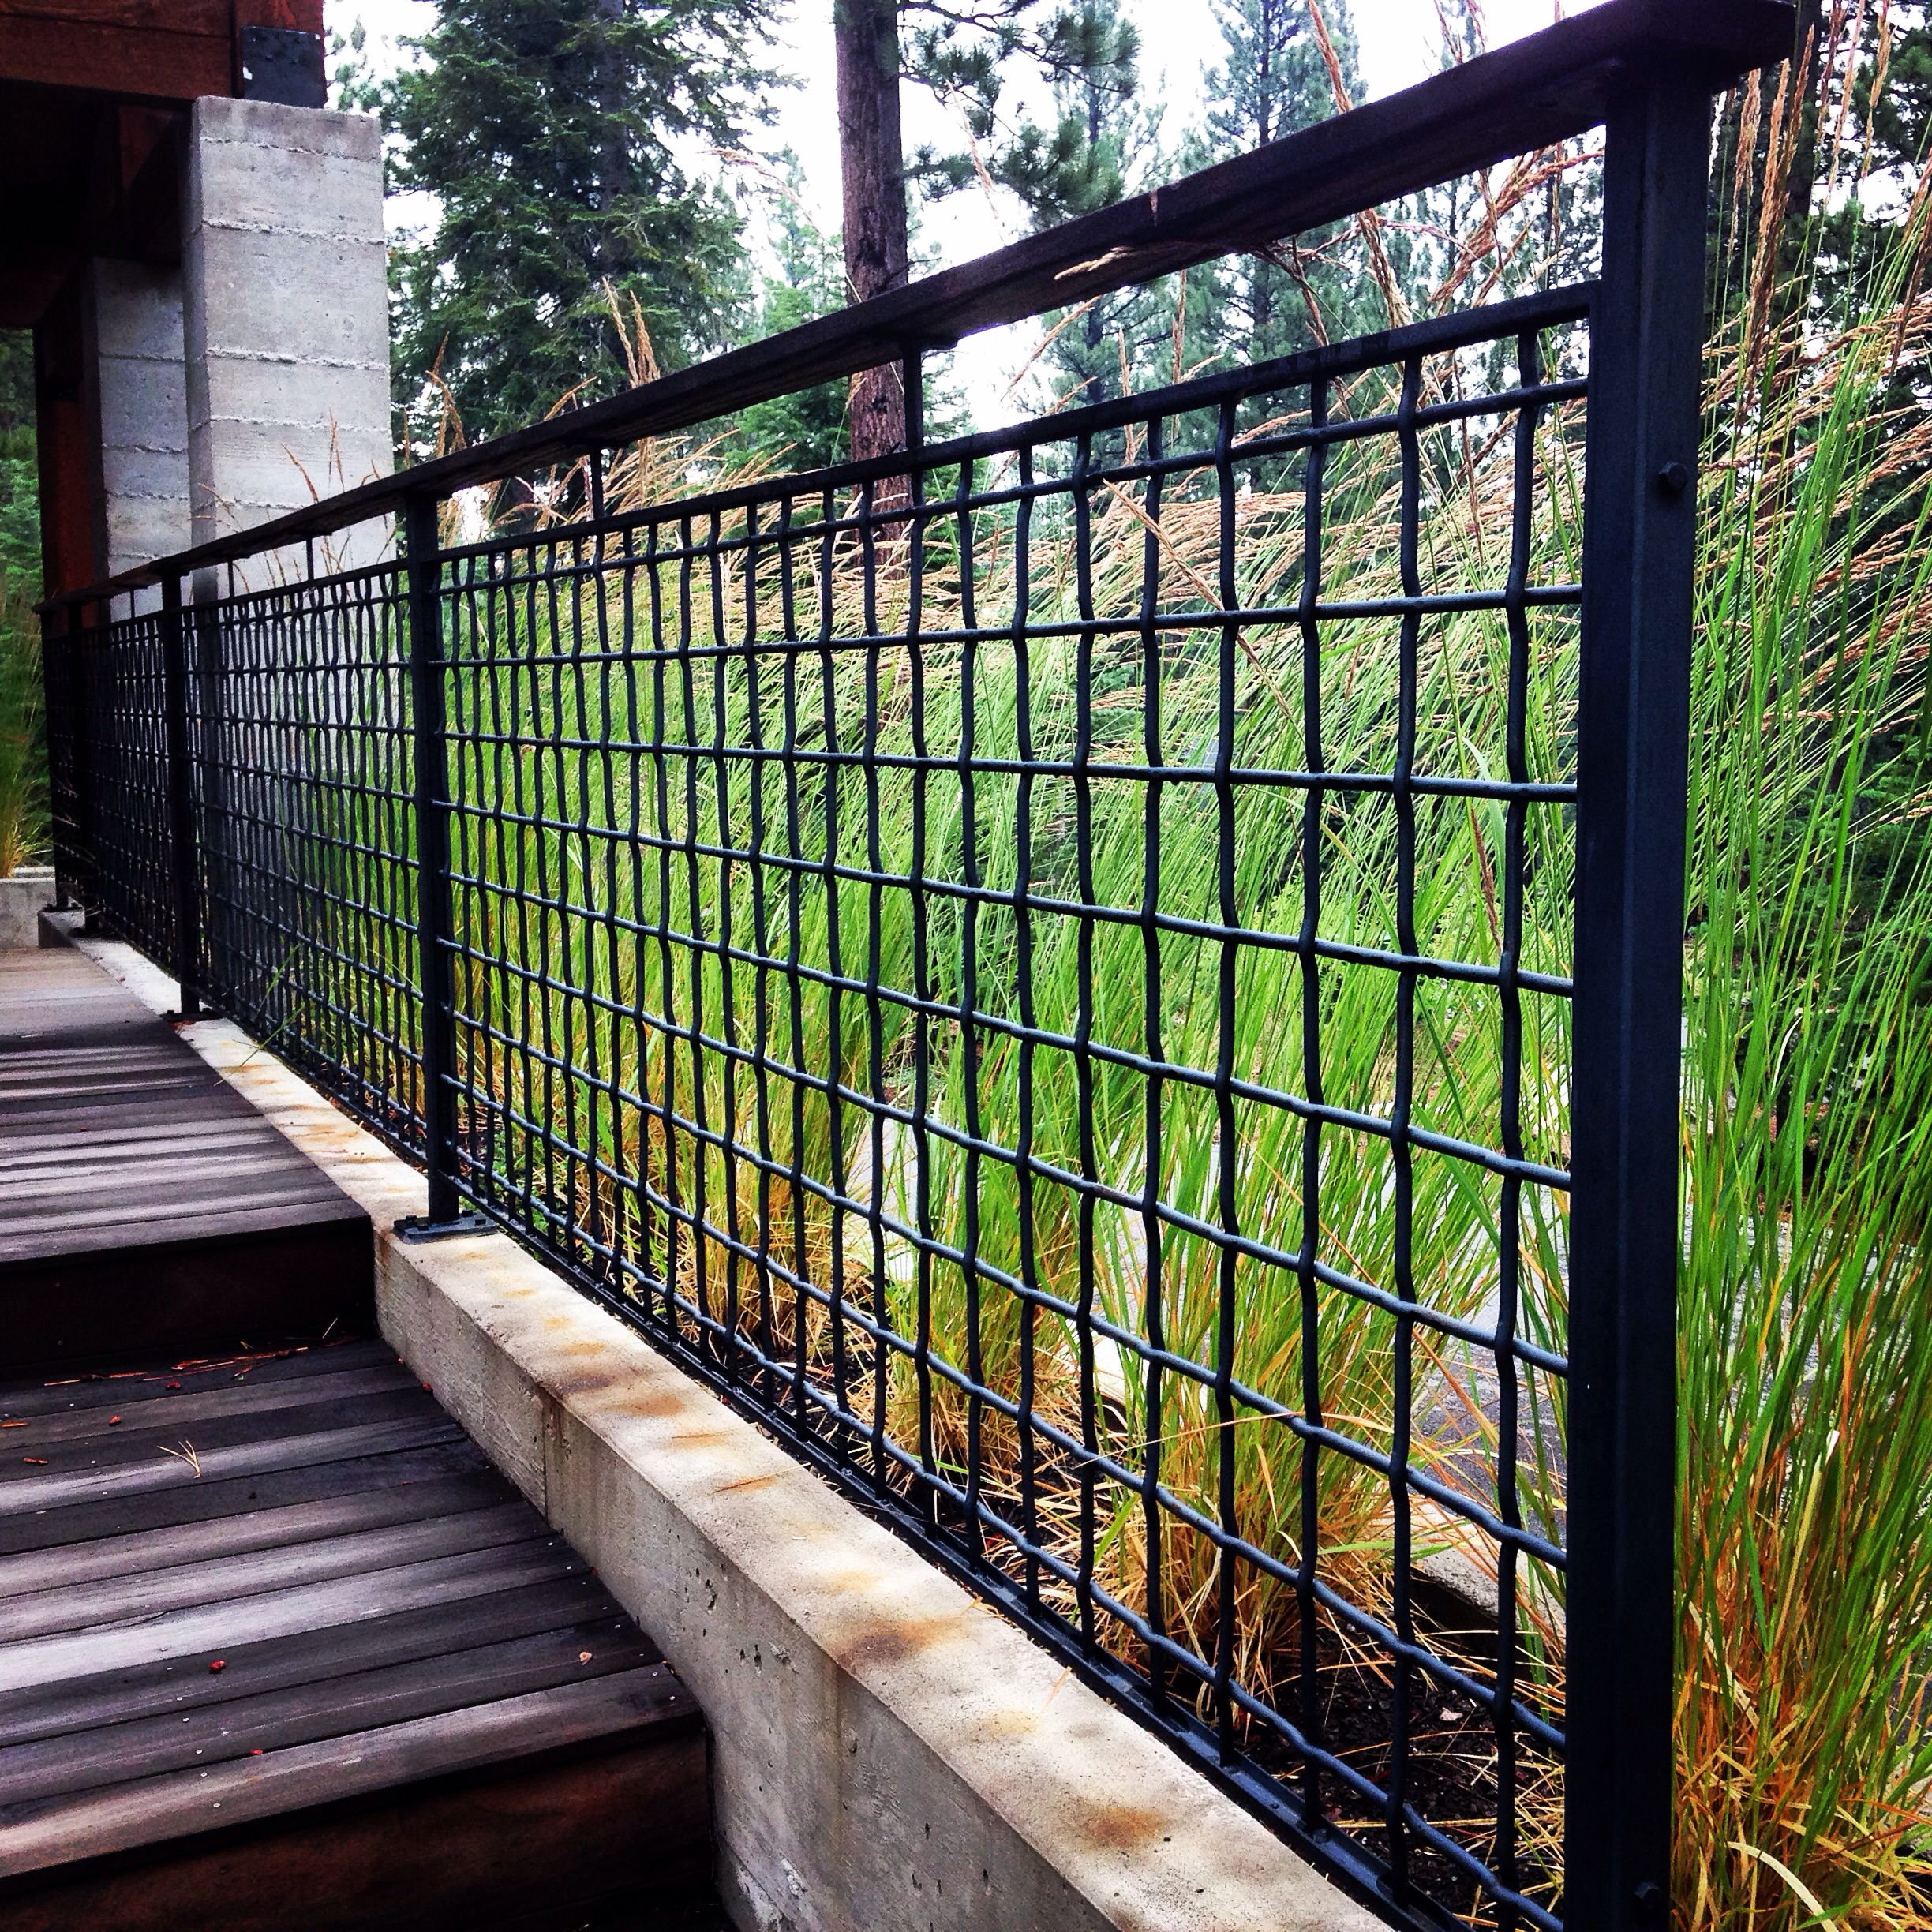 Martis Camp Home With 4 Mesh X 3 8 Ga Woven Wire With A 1 2 X1 X1 8 C Channel Frame With A Black Texture Powder Coat Railings Outdoor Wire Mesh Fence Fence